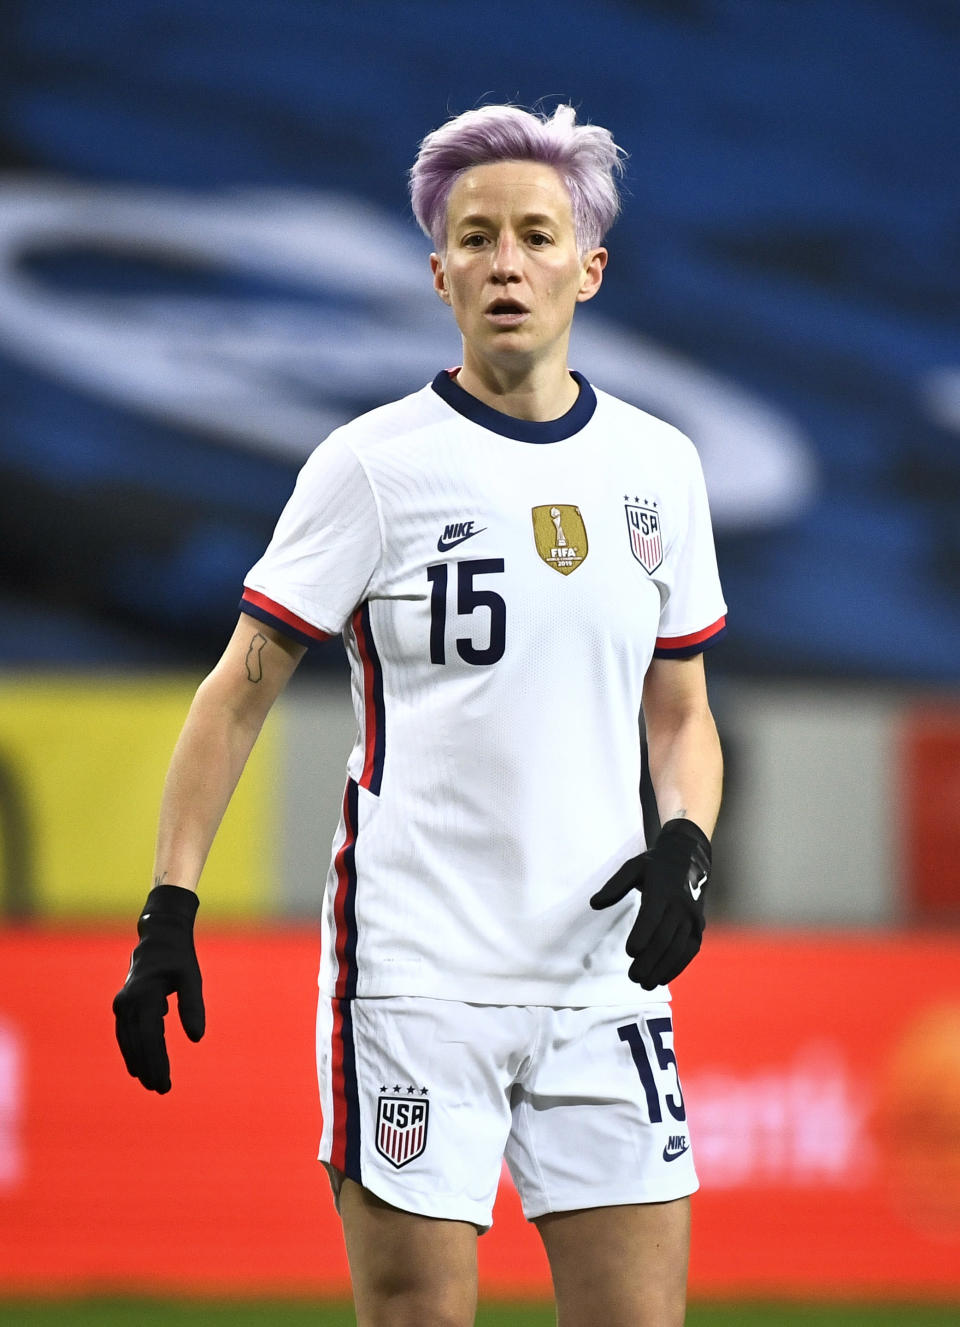 Megan Rapinoe of USA in action during the women's international friendly soccer match between Sweden and USA at Friends Arena in Stockholm, Sweden, Saturday, April 10, 2021. (Claudio Bresciani/TT via AP)